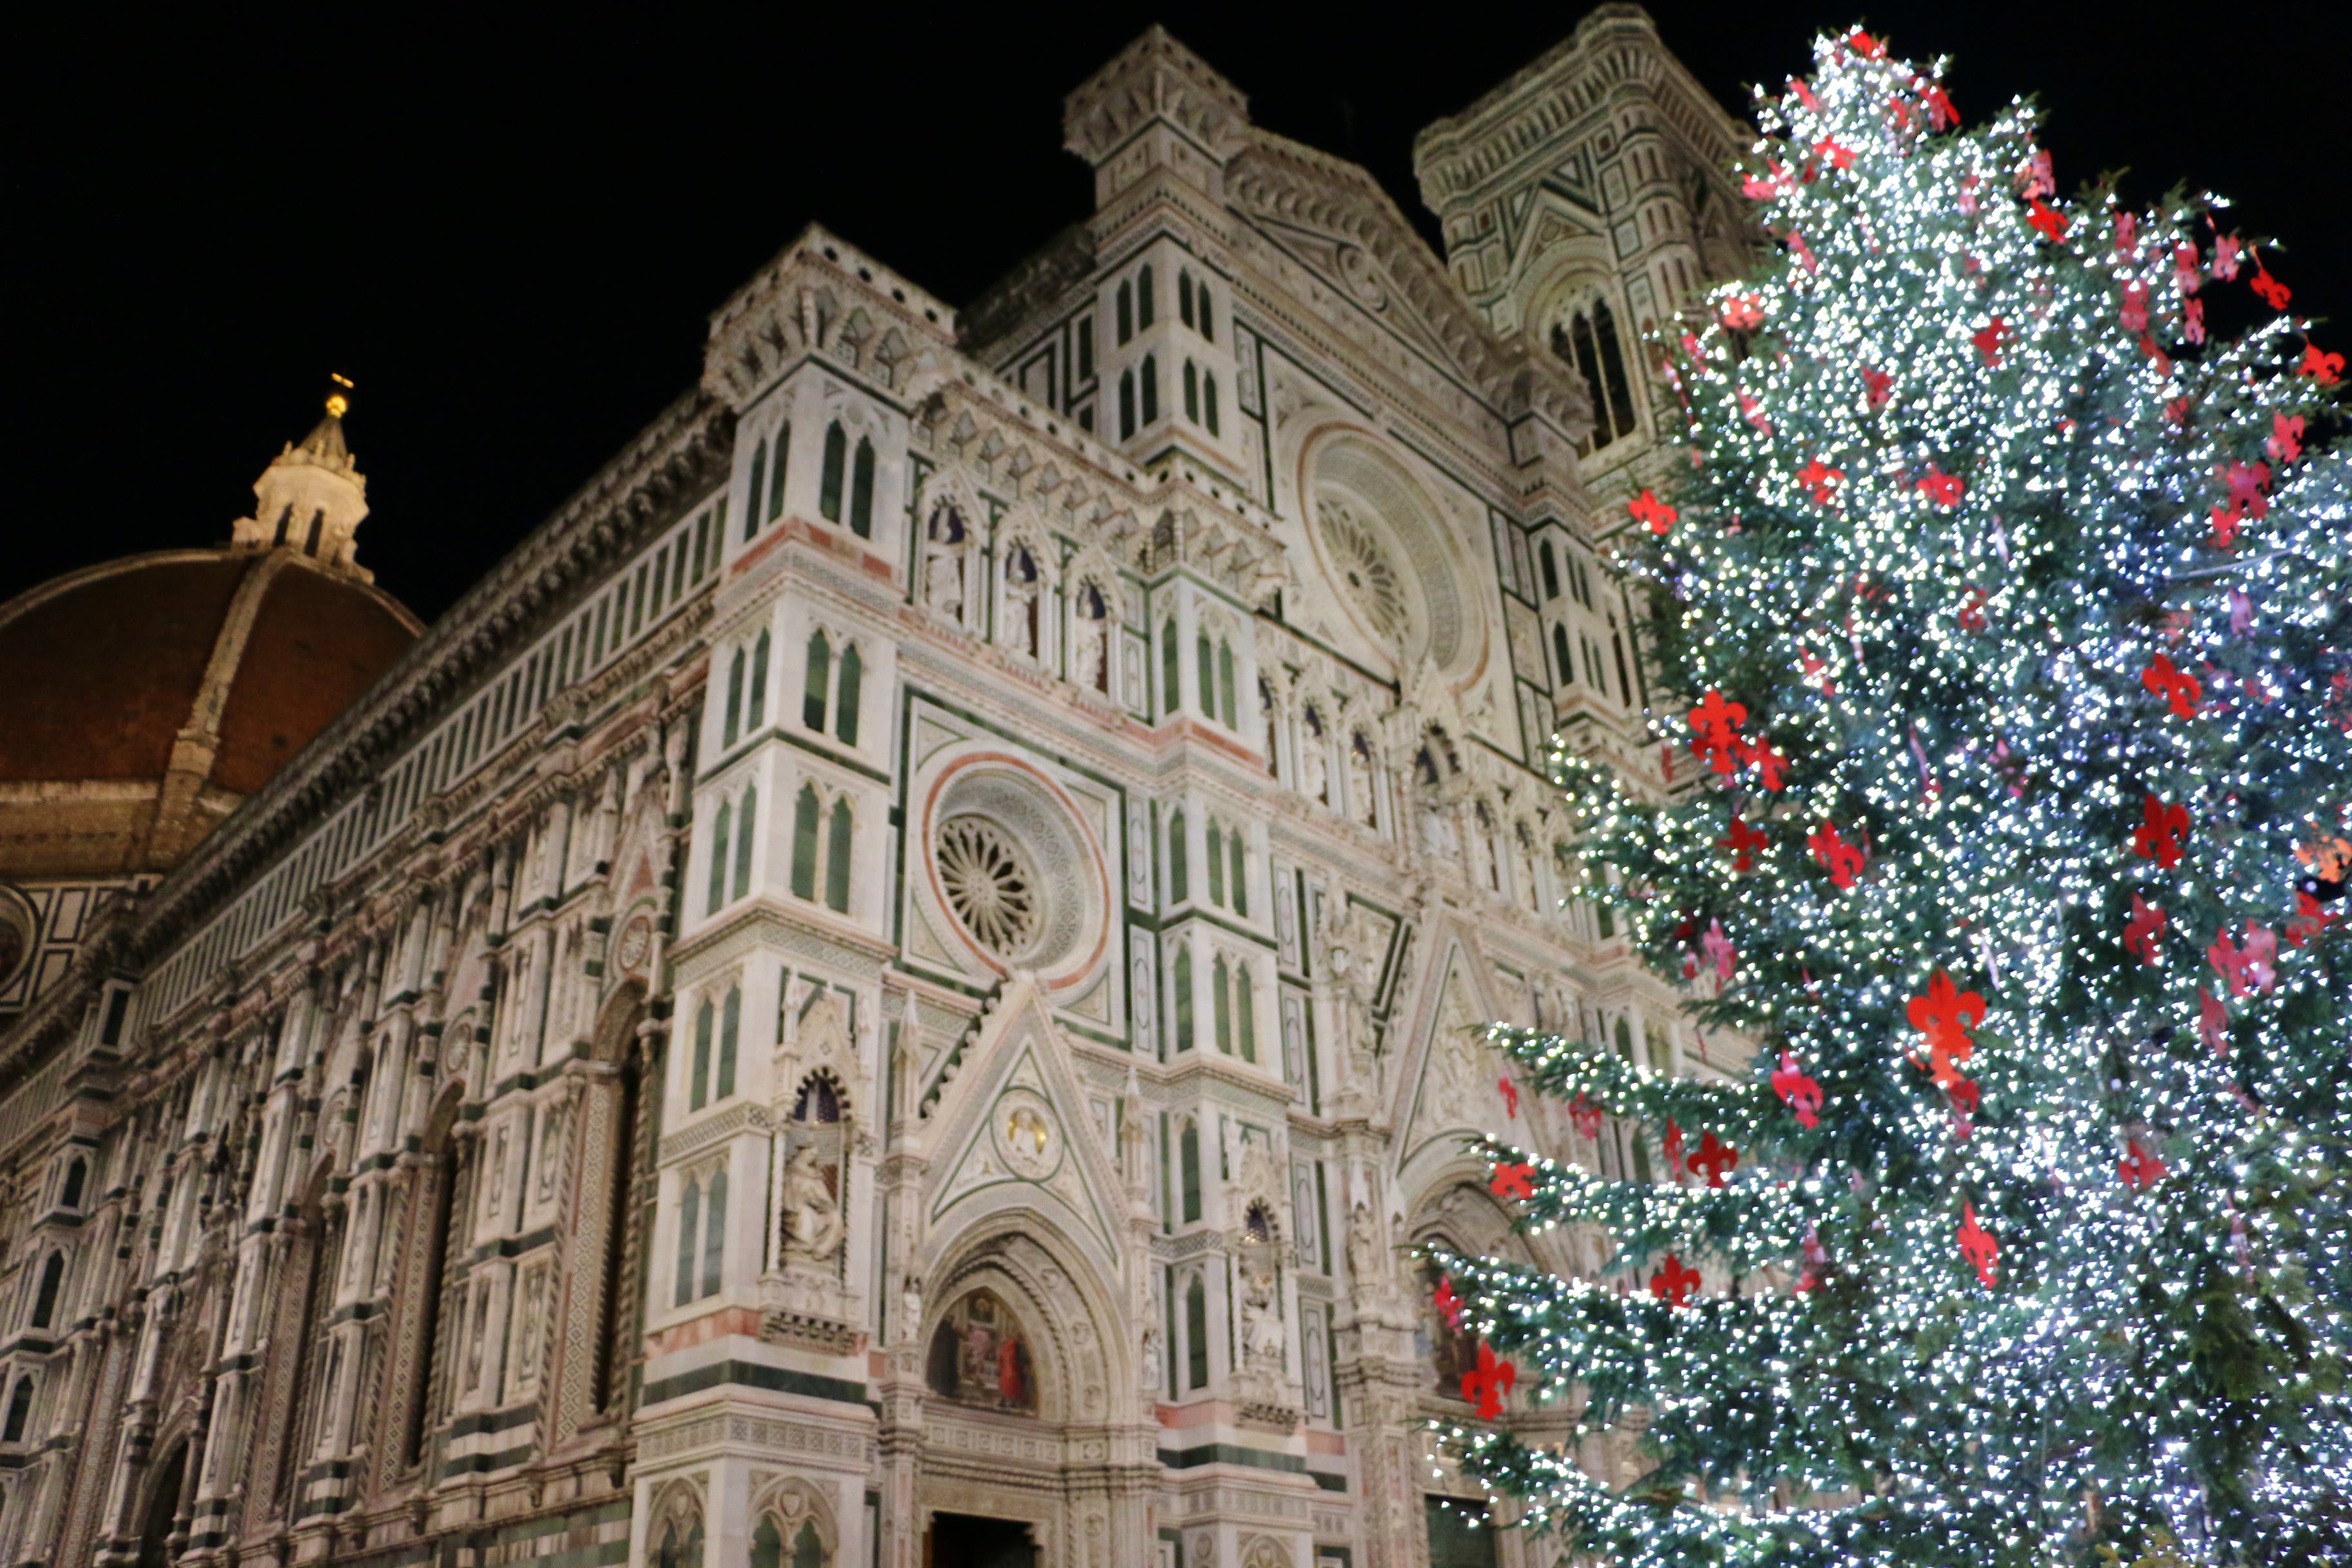 December & Christmas Holidays in Florence What to See and Do